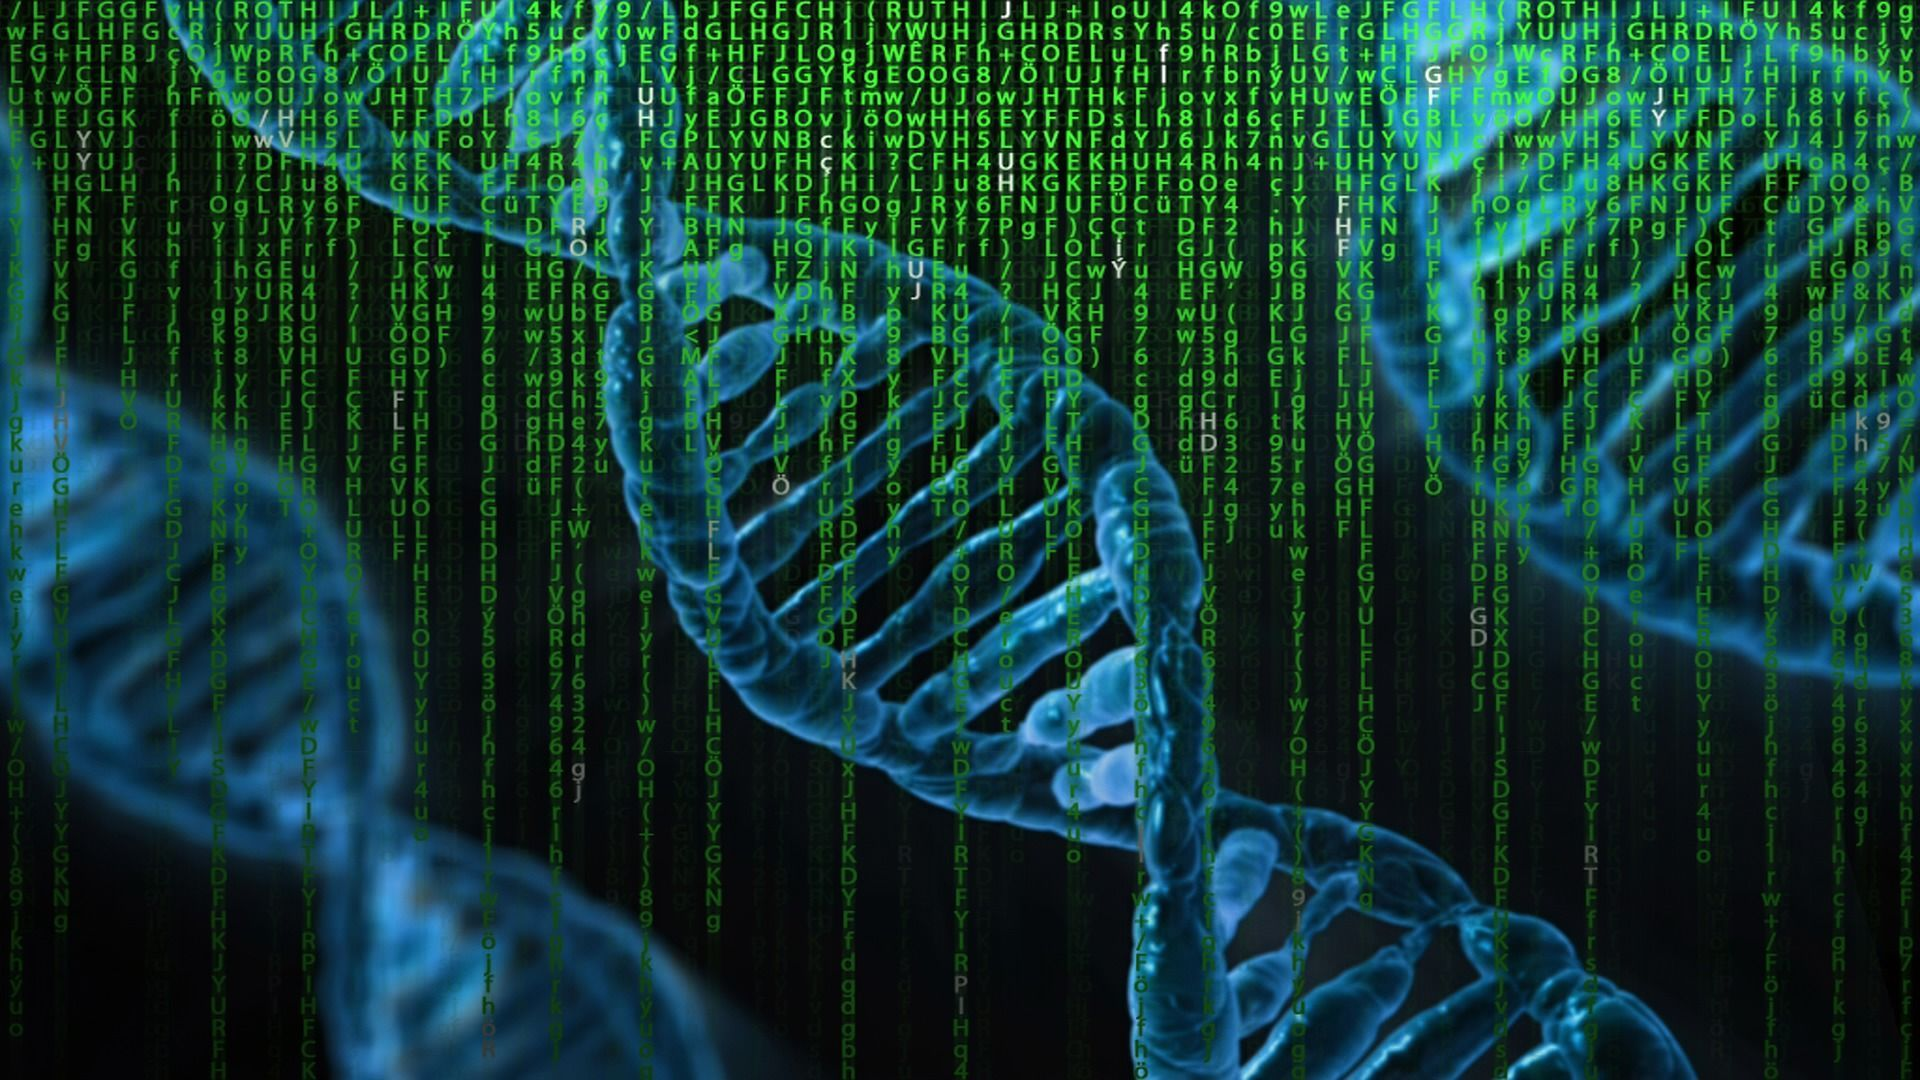 Trillion data points to identify disease-causing genes